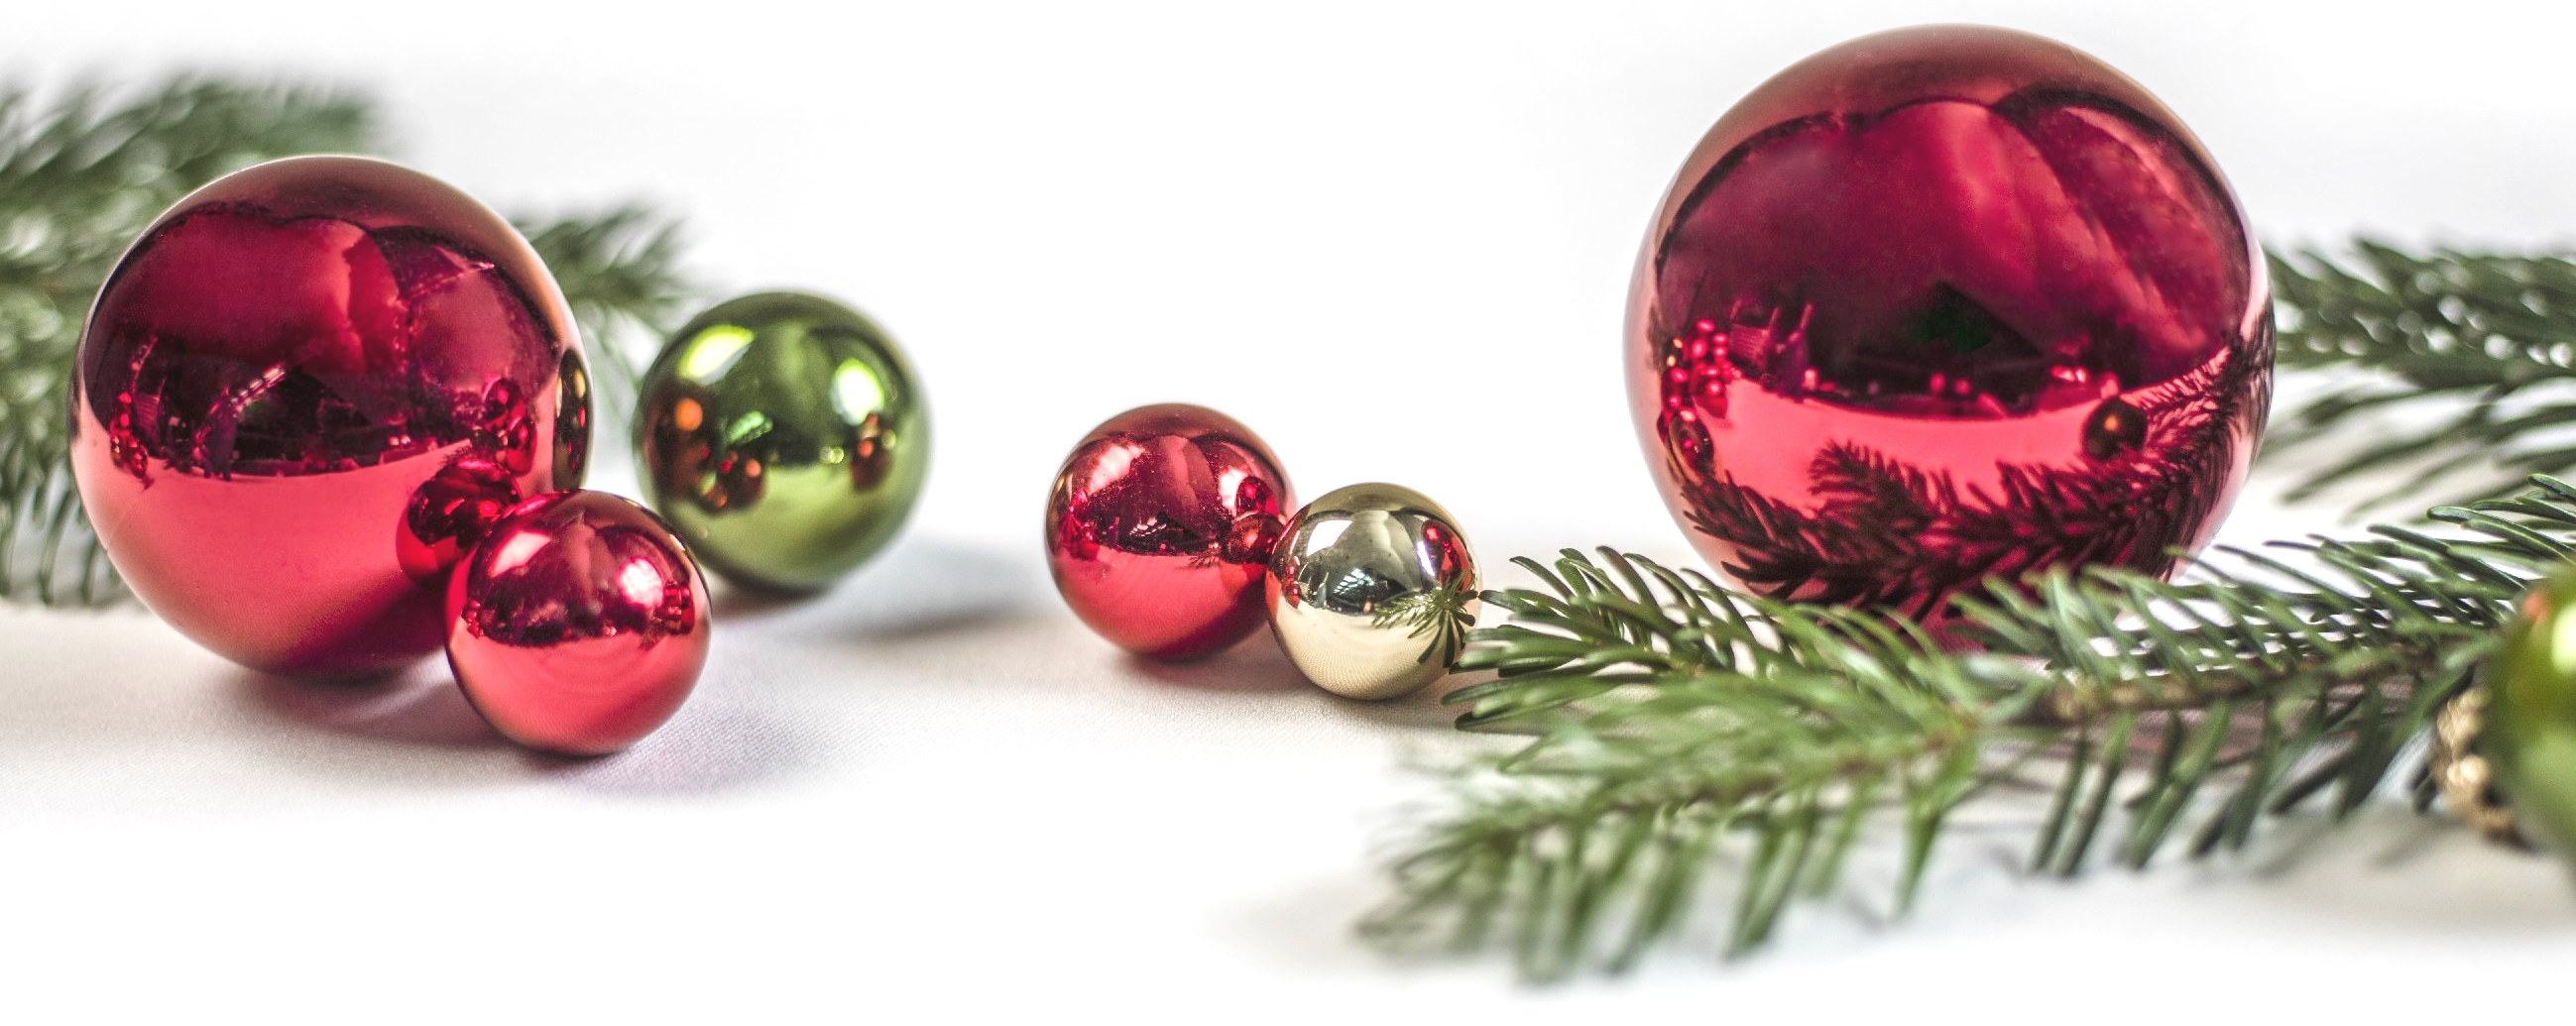 DUSSE_P443_Christmas_Tree_Balls_with_Greens_86485_med_1_